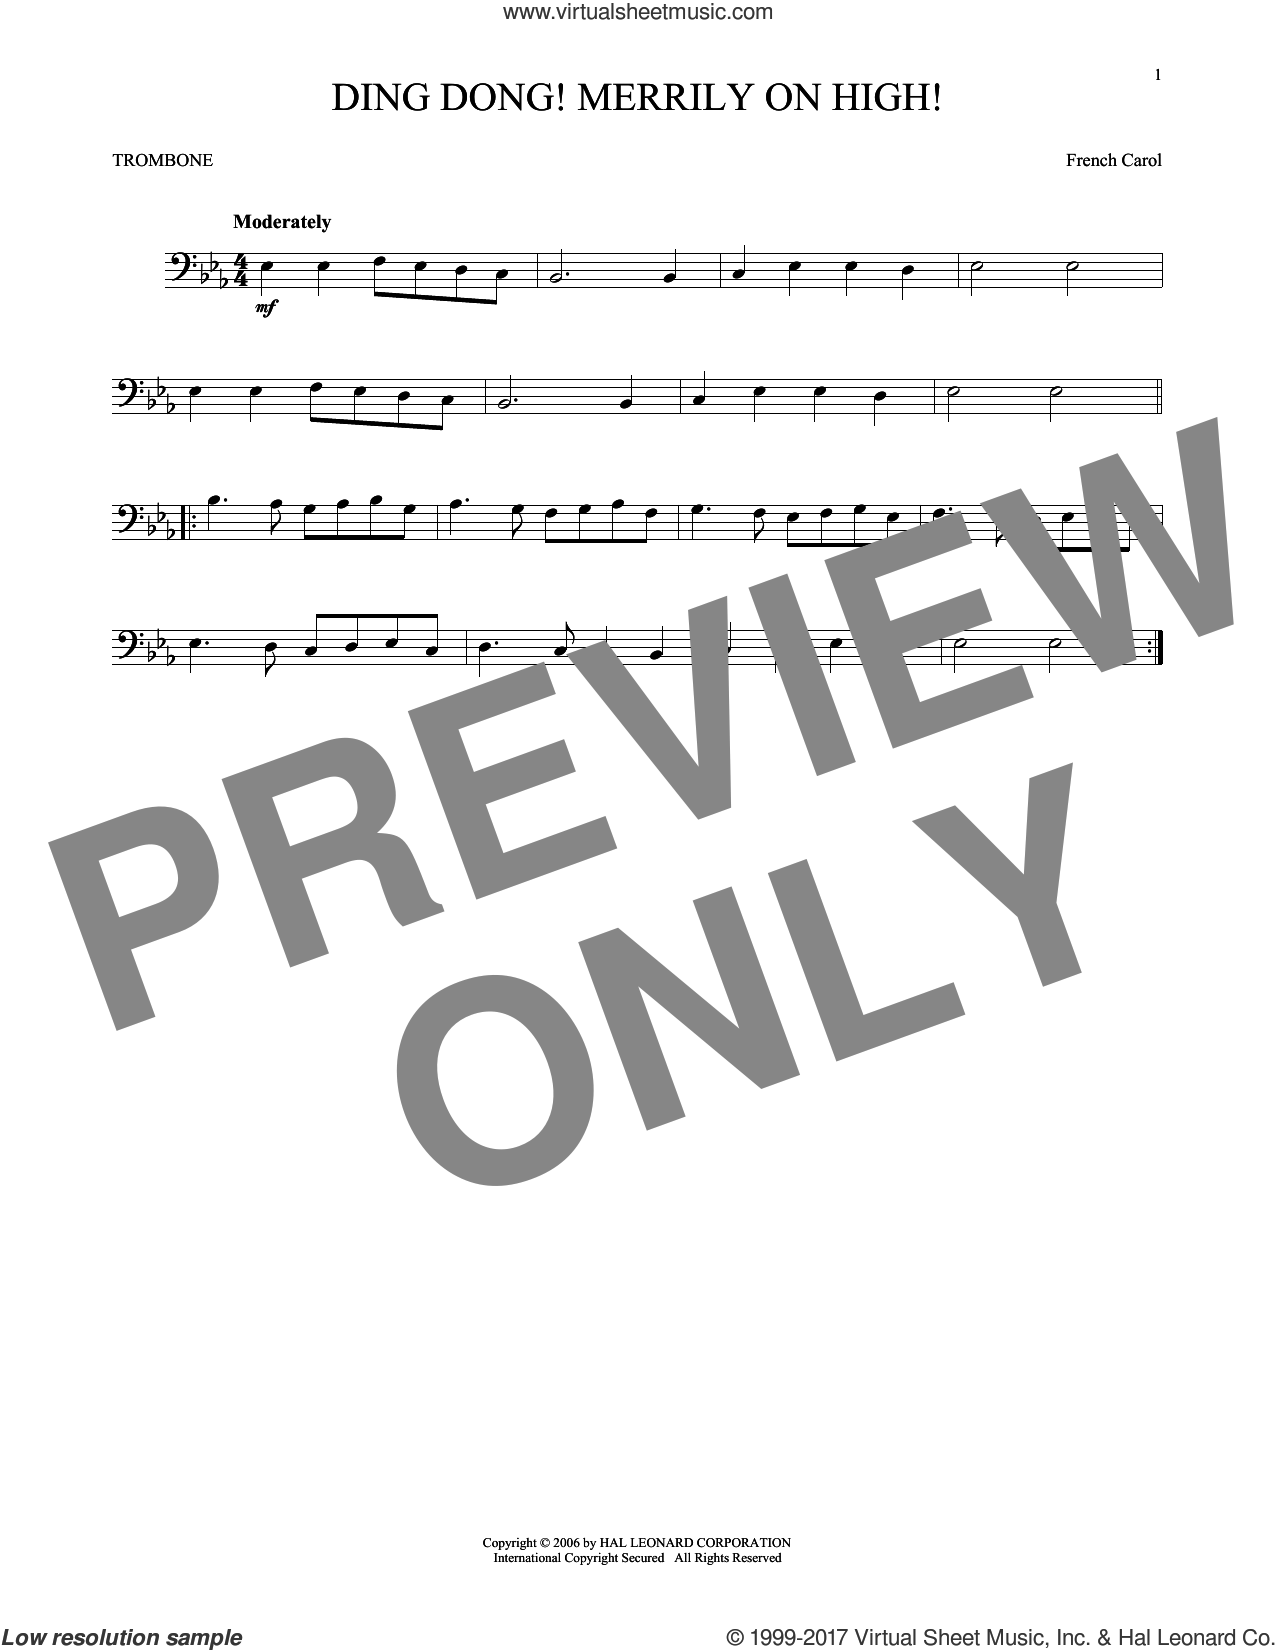 Ding Dong! Merrily On High! sheet music for trombone solo, intermediate. Score Image Preview.